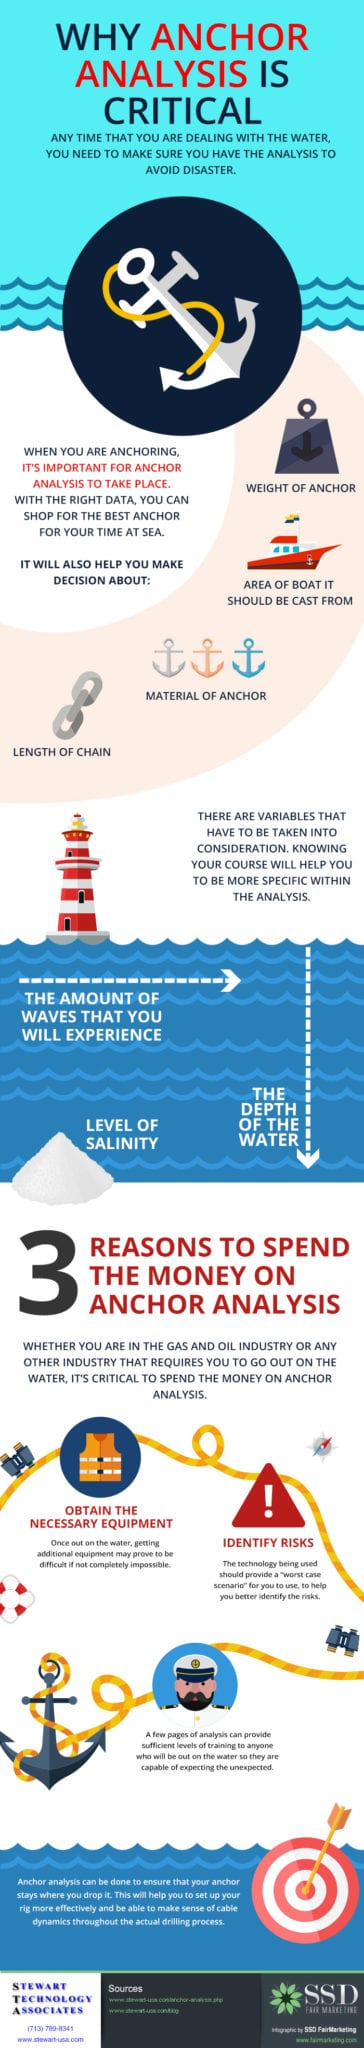 Anchor Analysis - Infographic - December - 2014